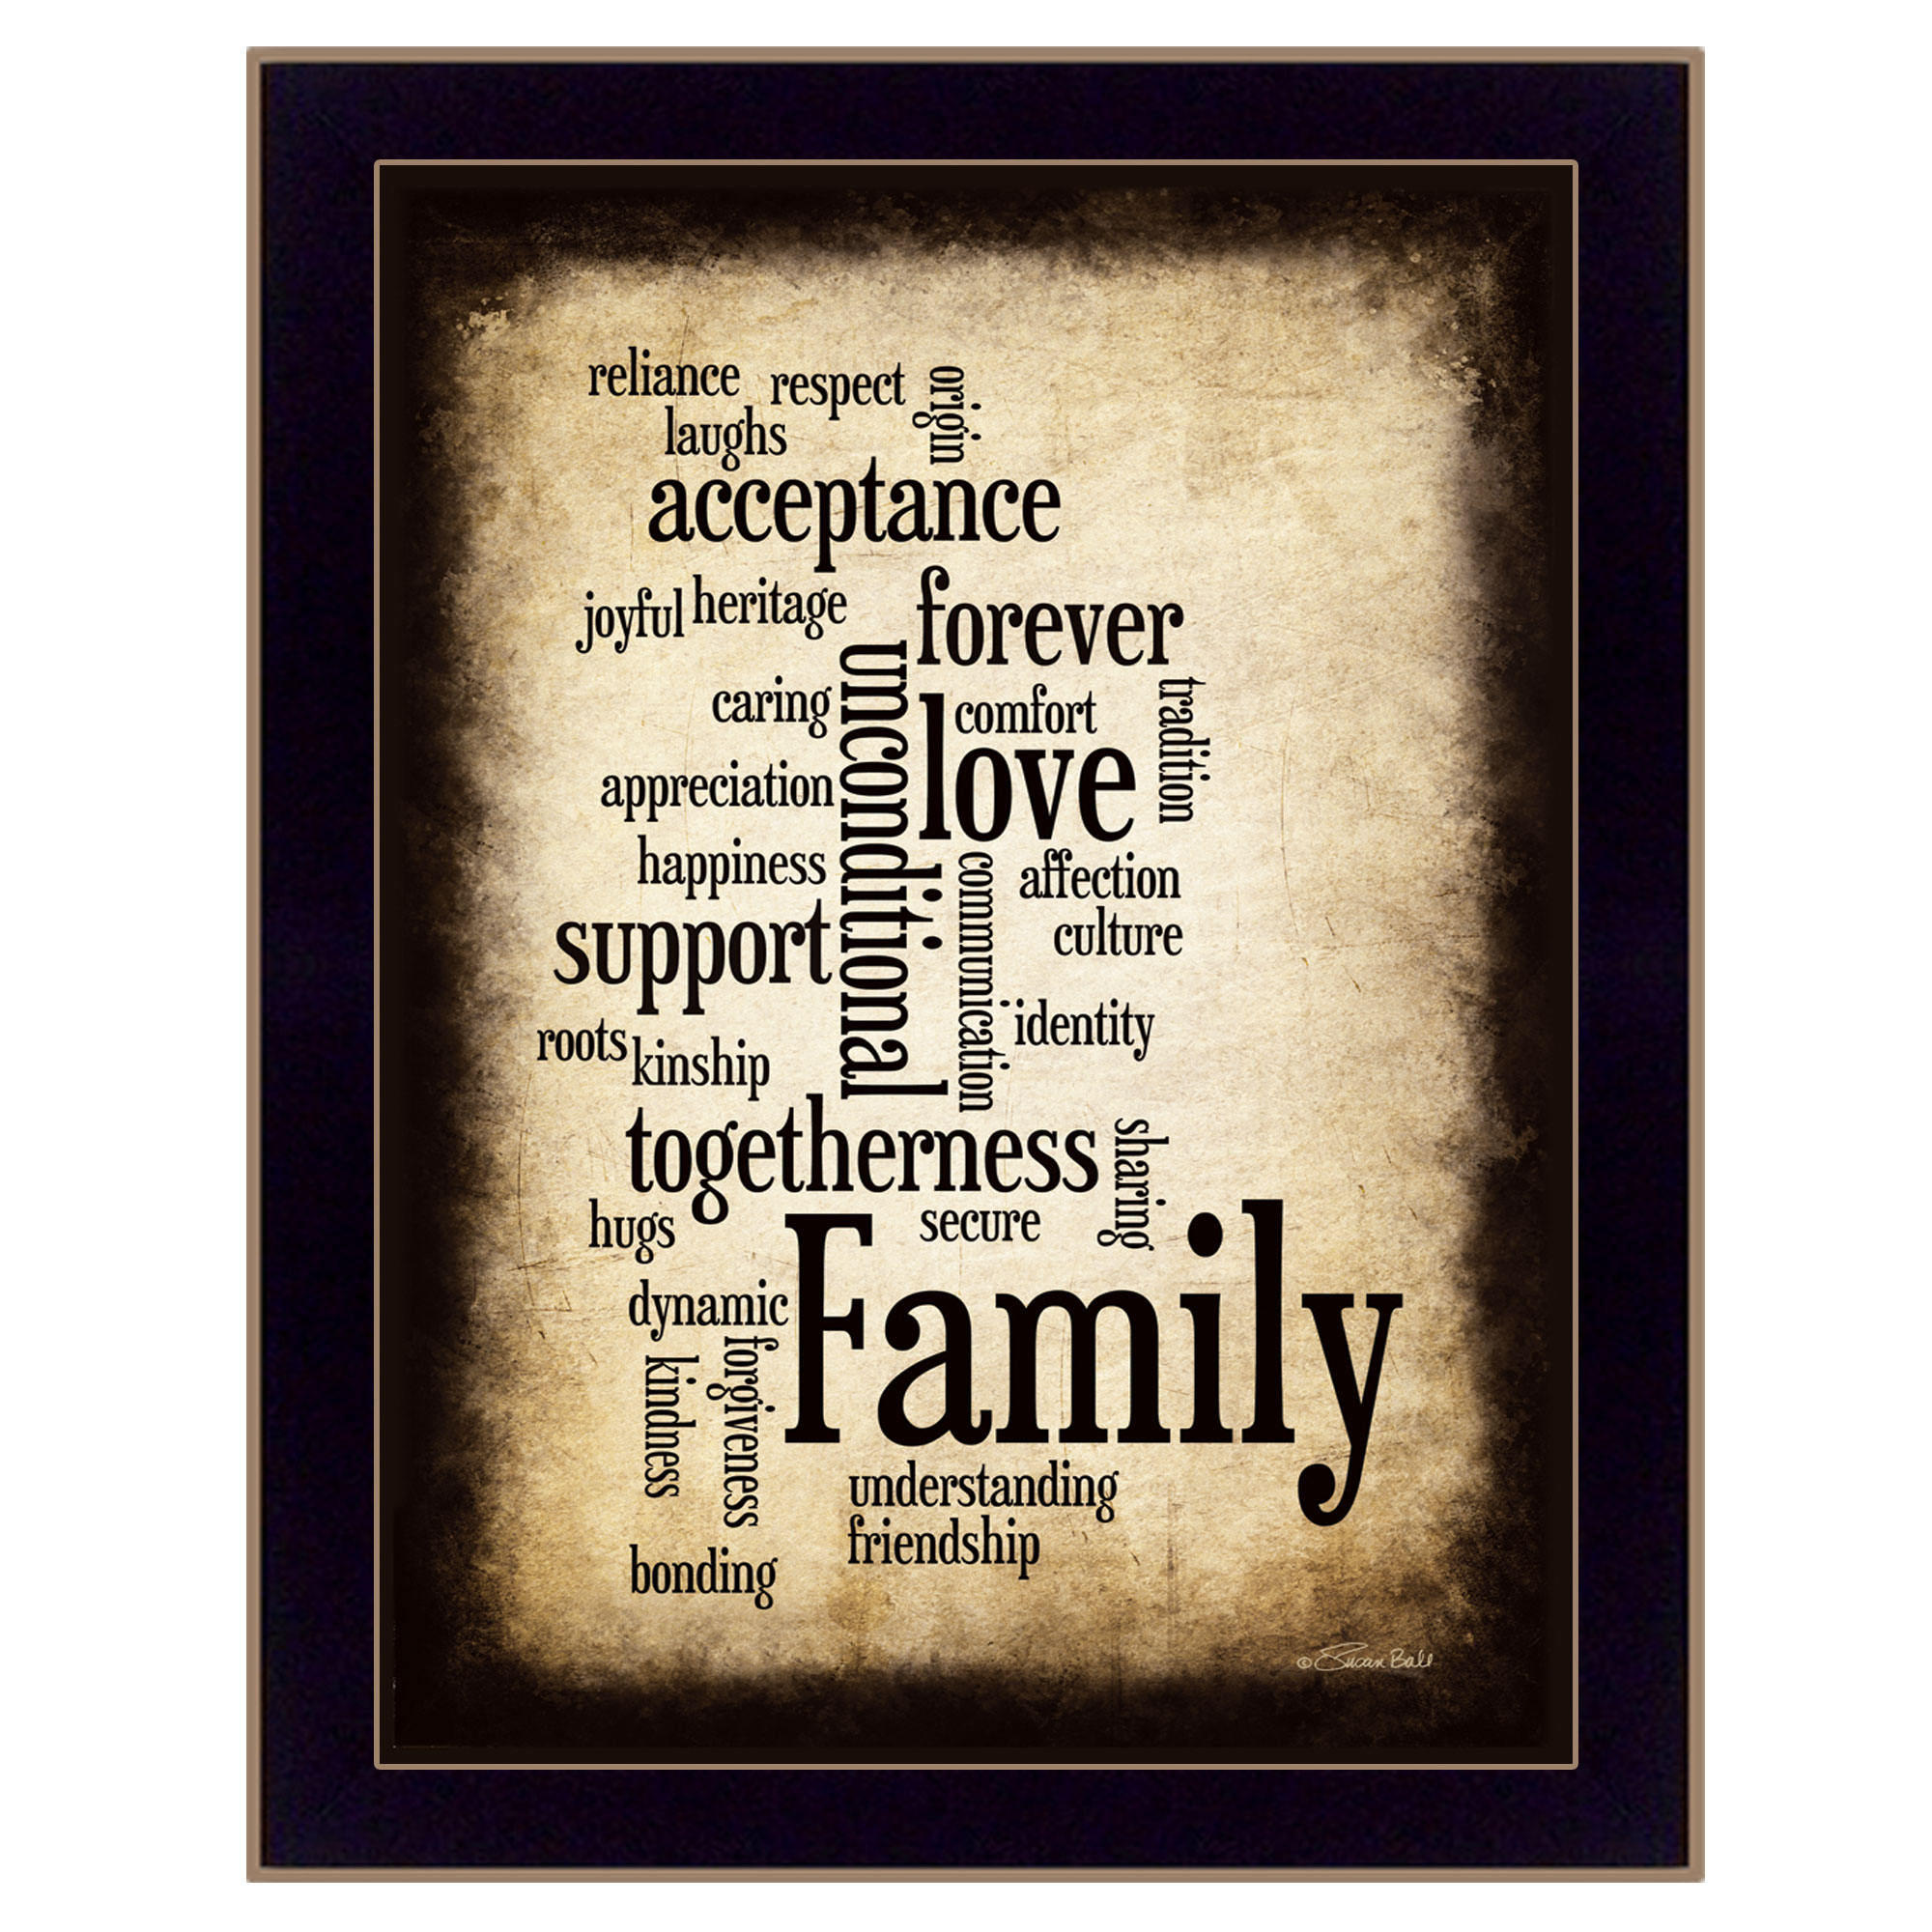 Family  by Susan Boyle Printed Framed Wall Art